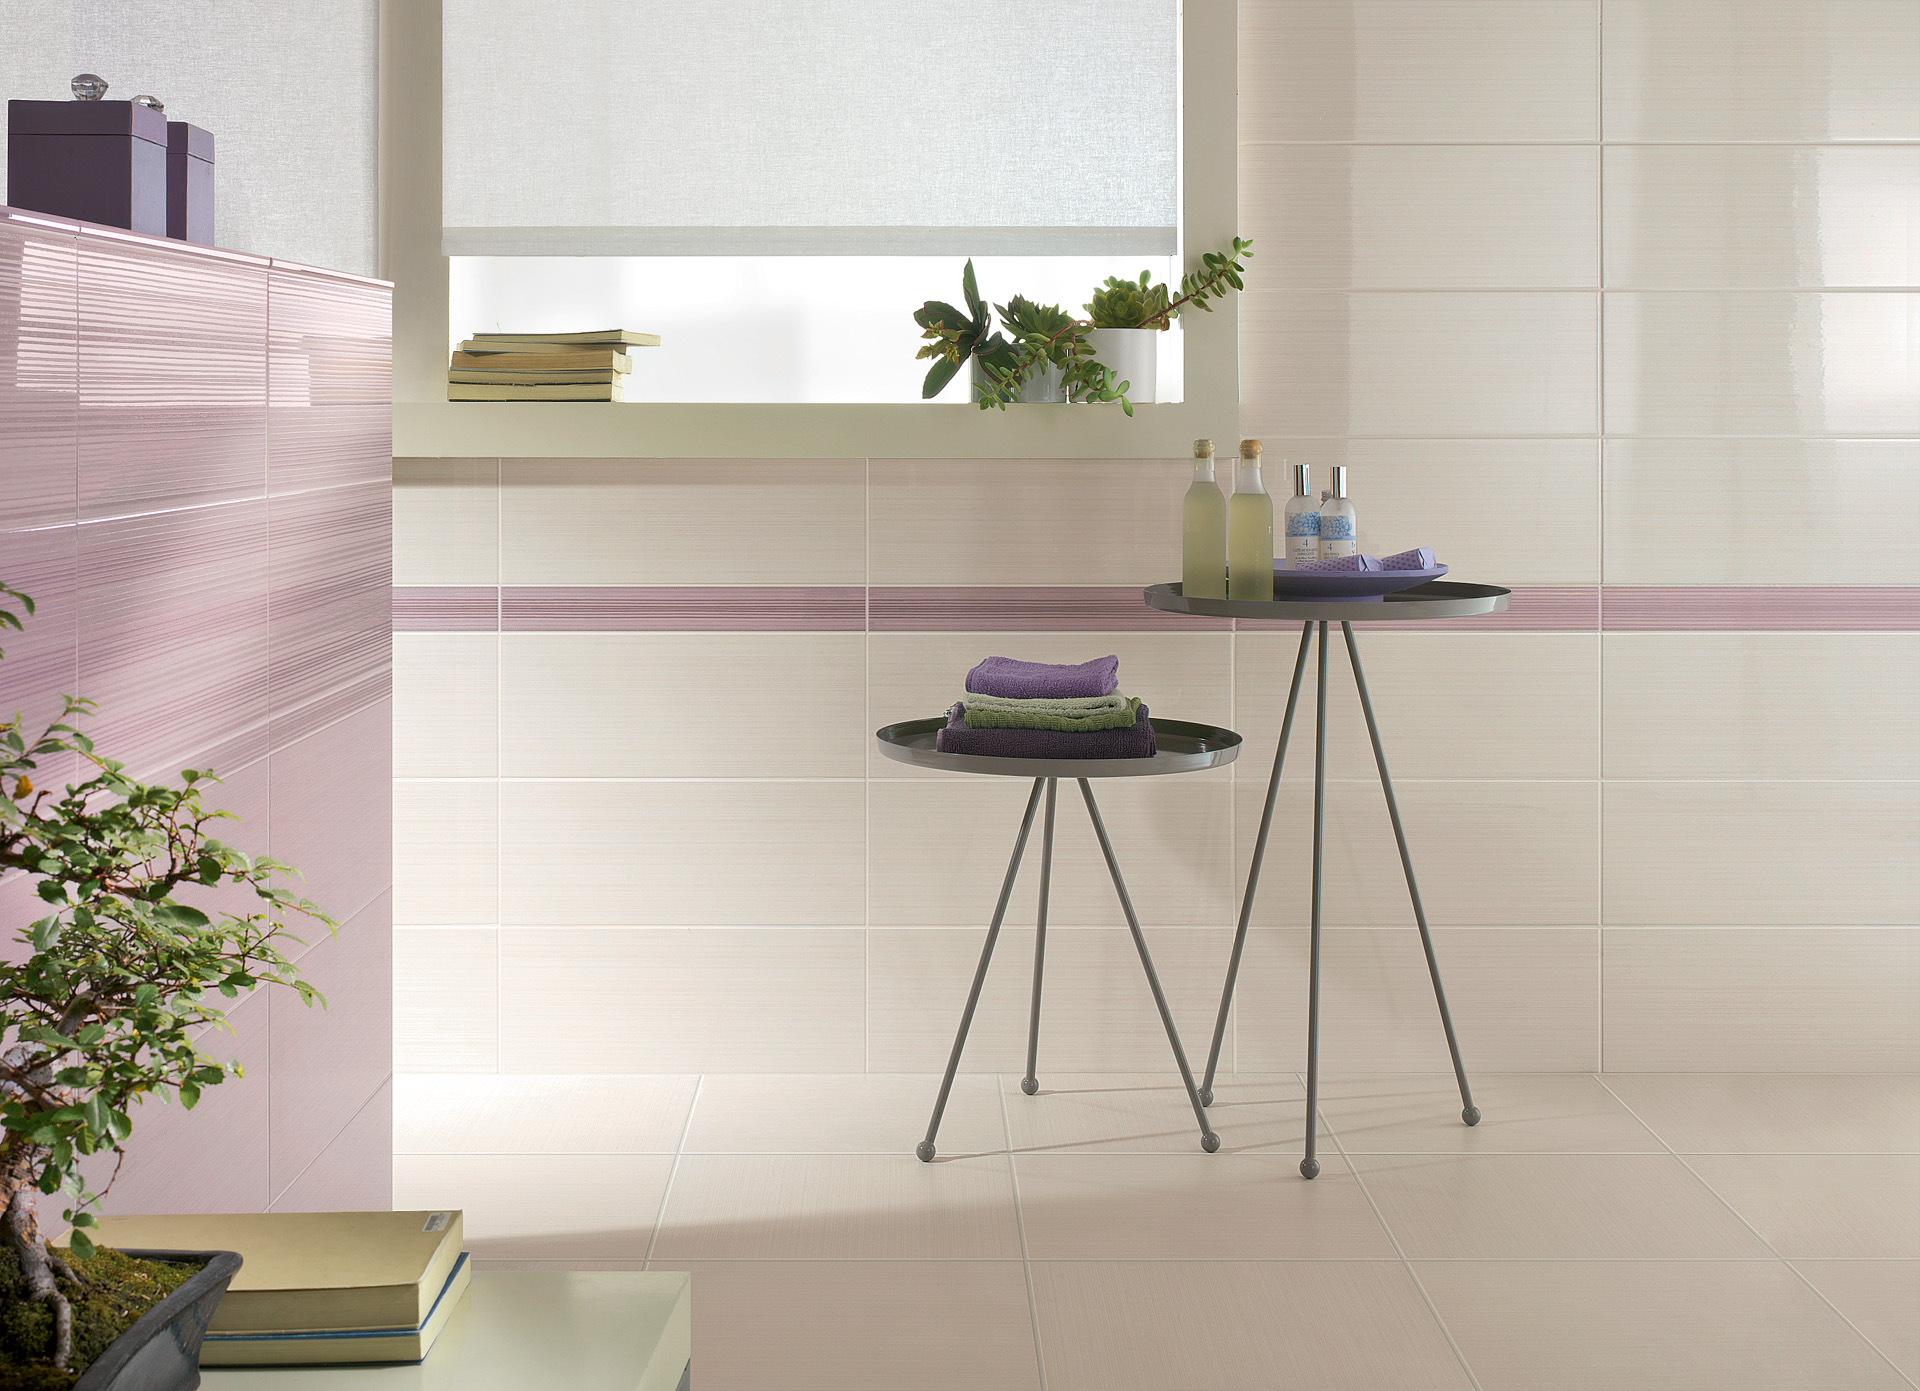 Ceramiche gardenia orchidea: ceramic tiles floor and wall coverings